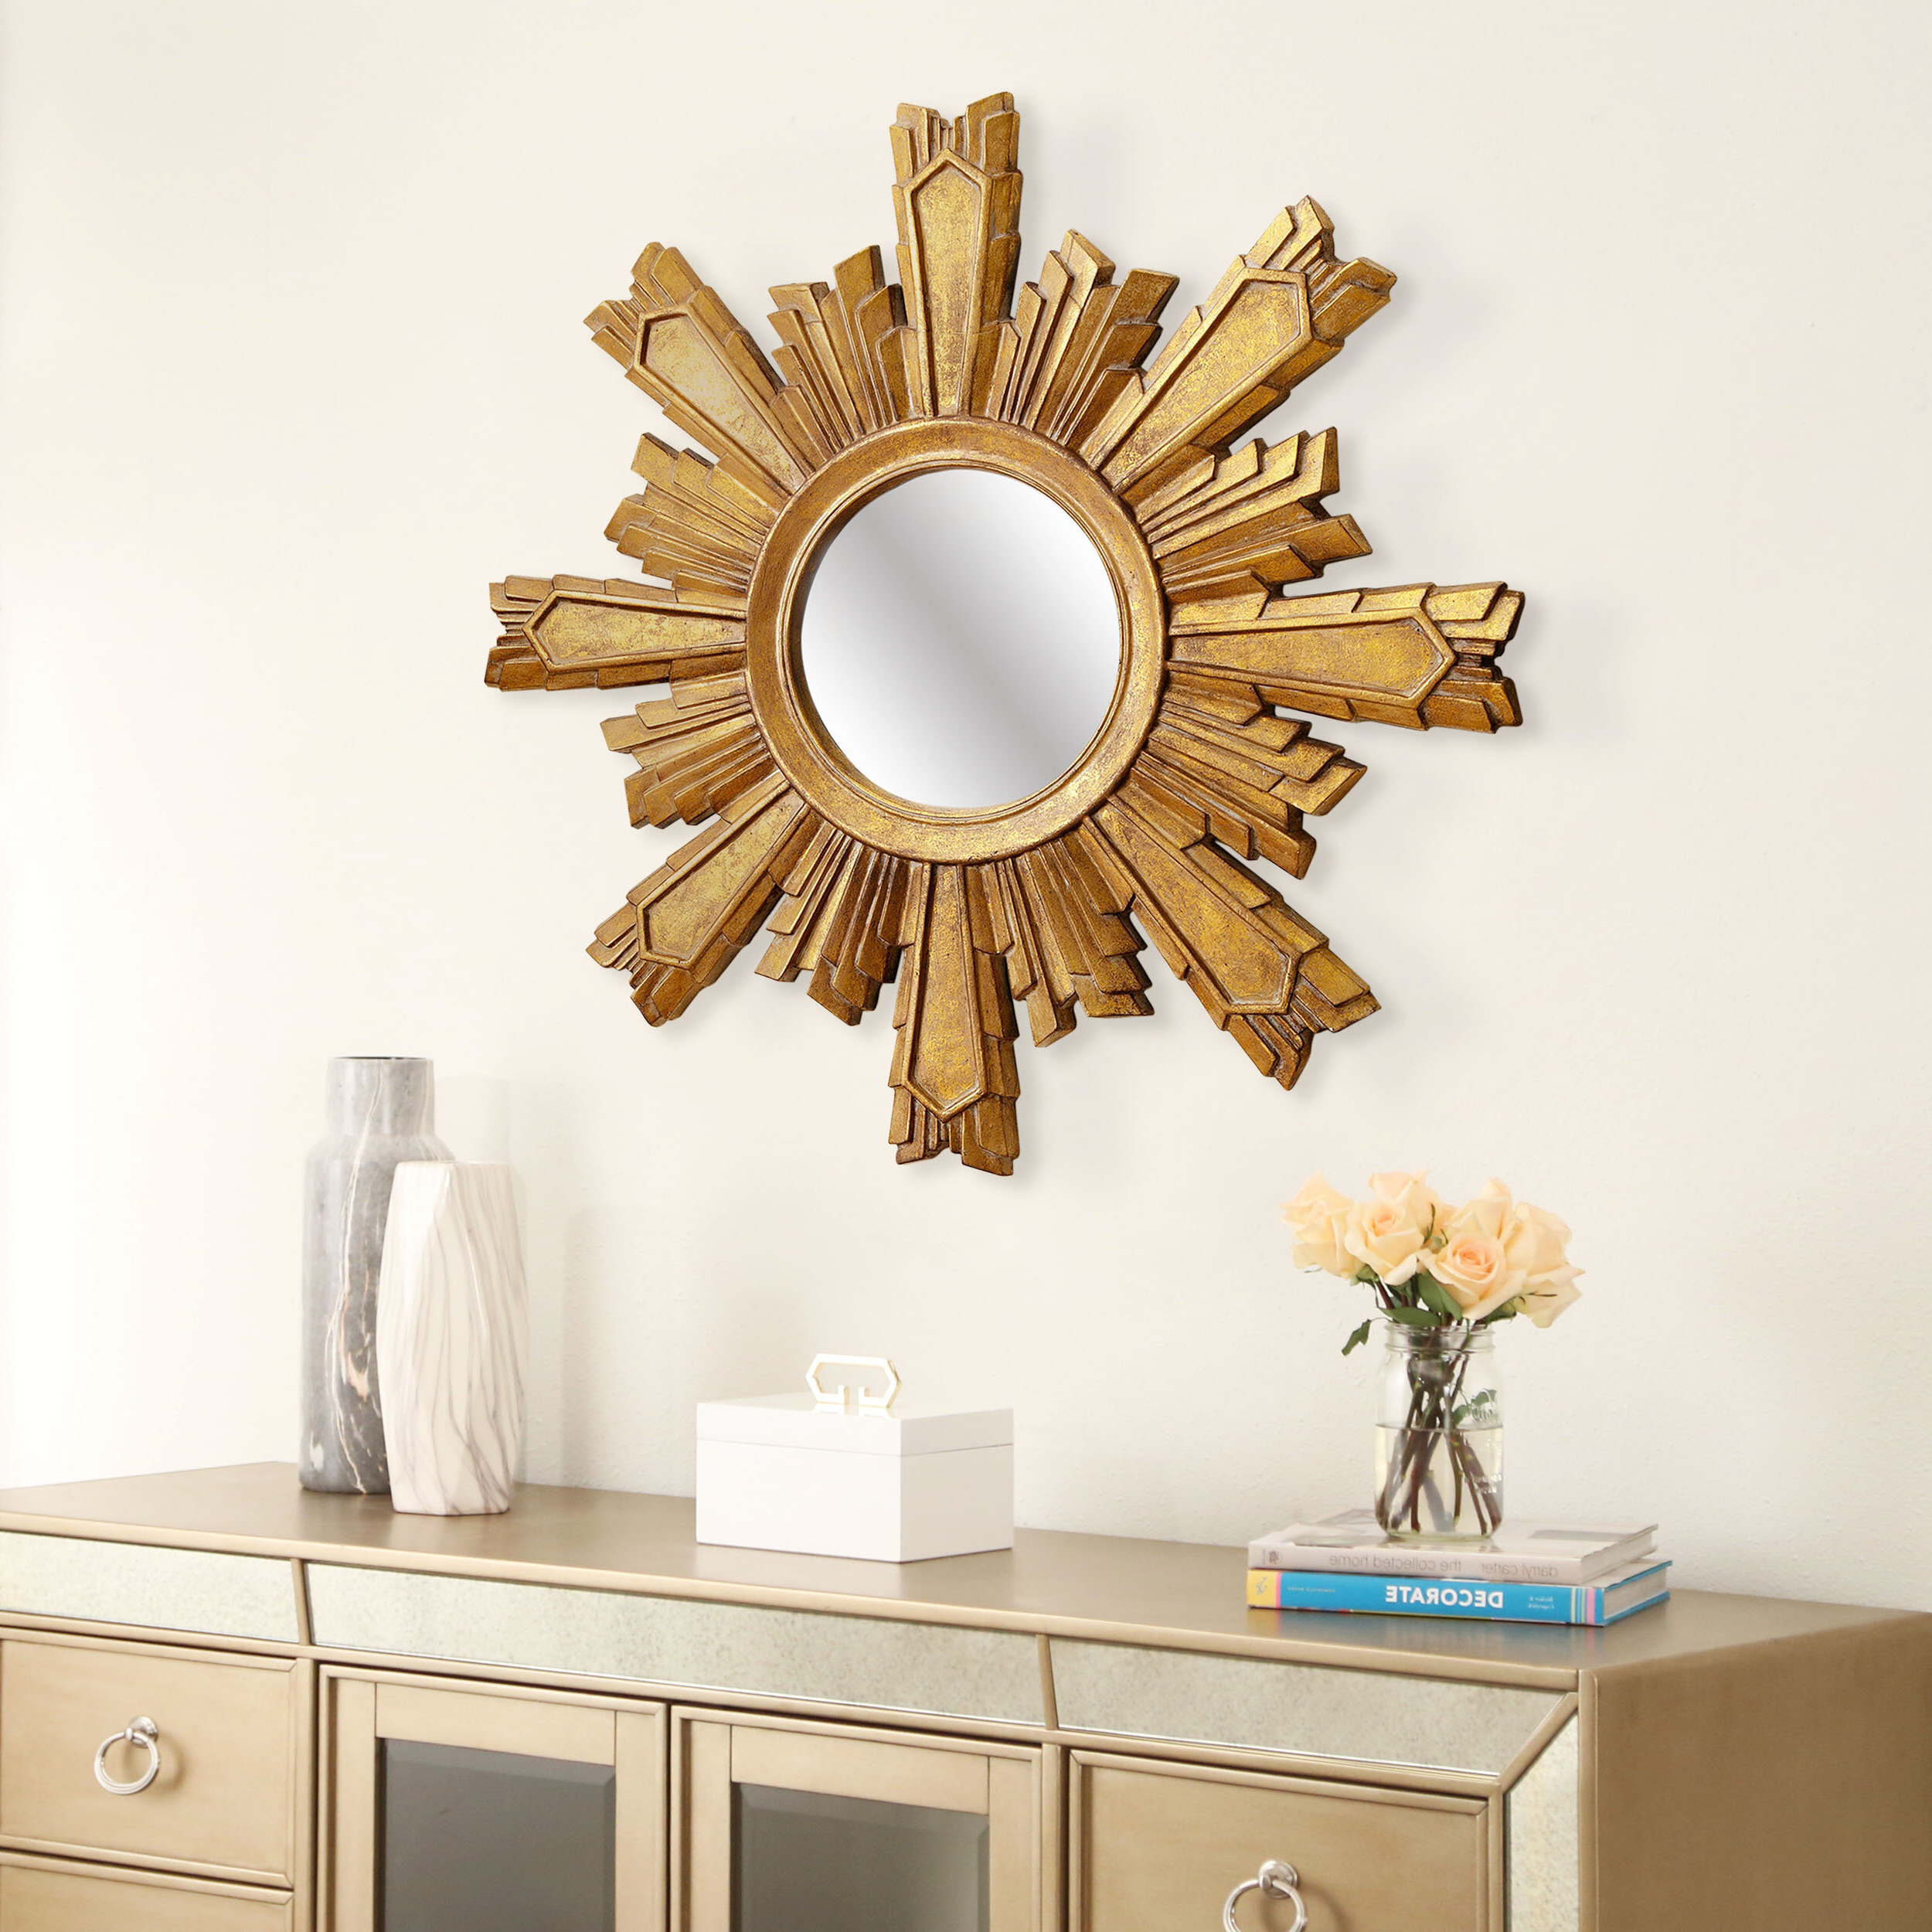 Wayfair For Current Starburst Wall Decor By Willa Arlo Interiors (View 17 of 20)